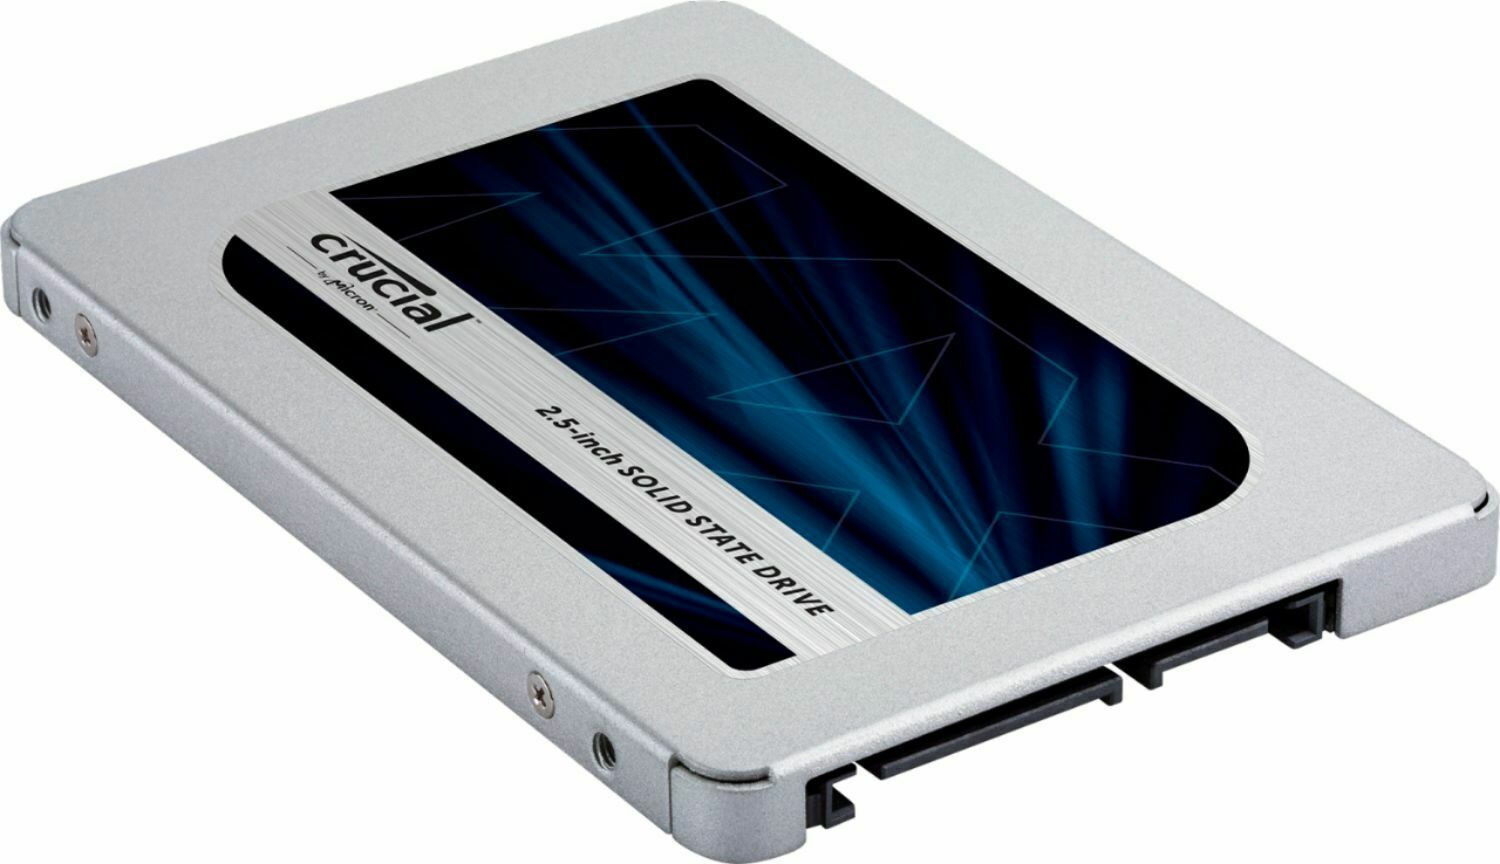 Crucial - MX500 1TB 3D NAND SATA 2.5 Inch Internal Solid State Drive. Buy it now for 104.99